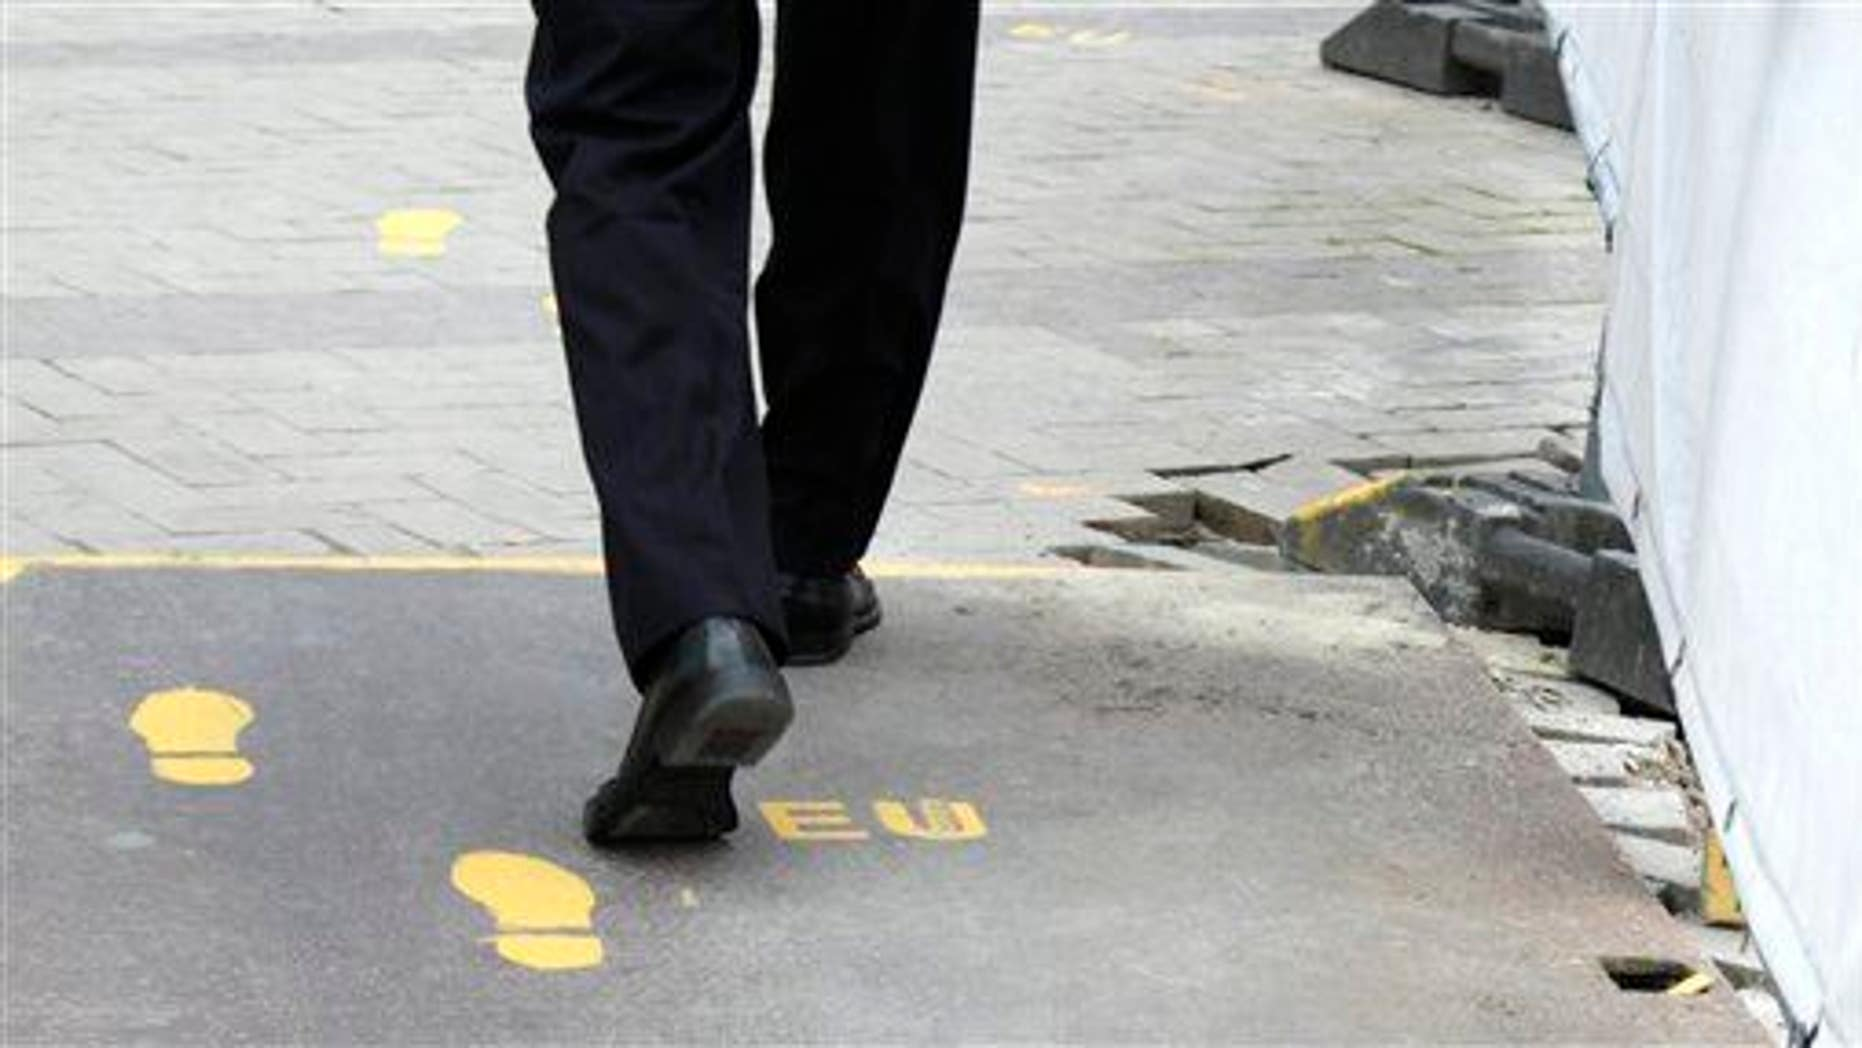 A man follows a yellow foot path in Brussels, Wednesday, June 27, 2012.